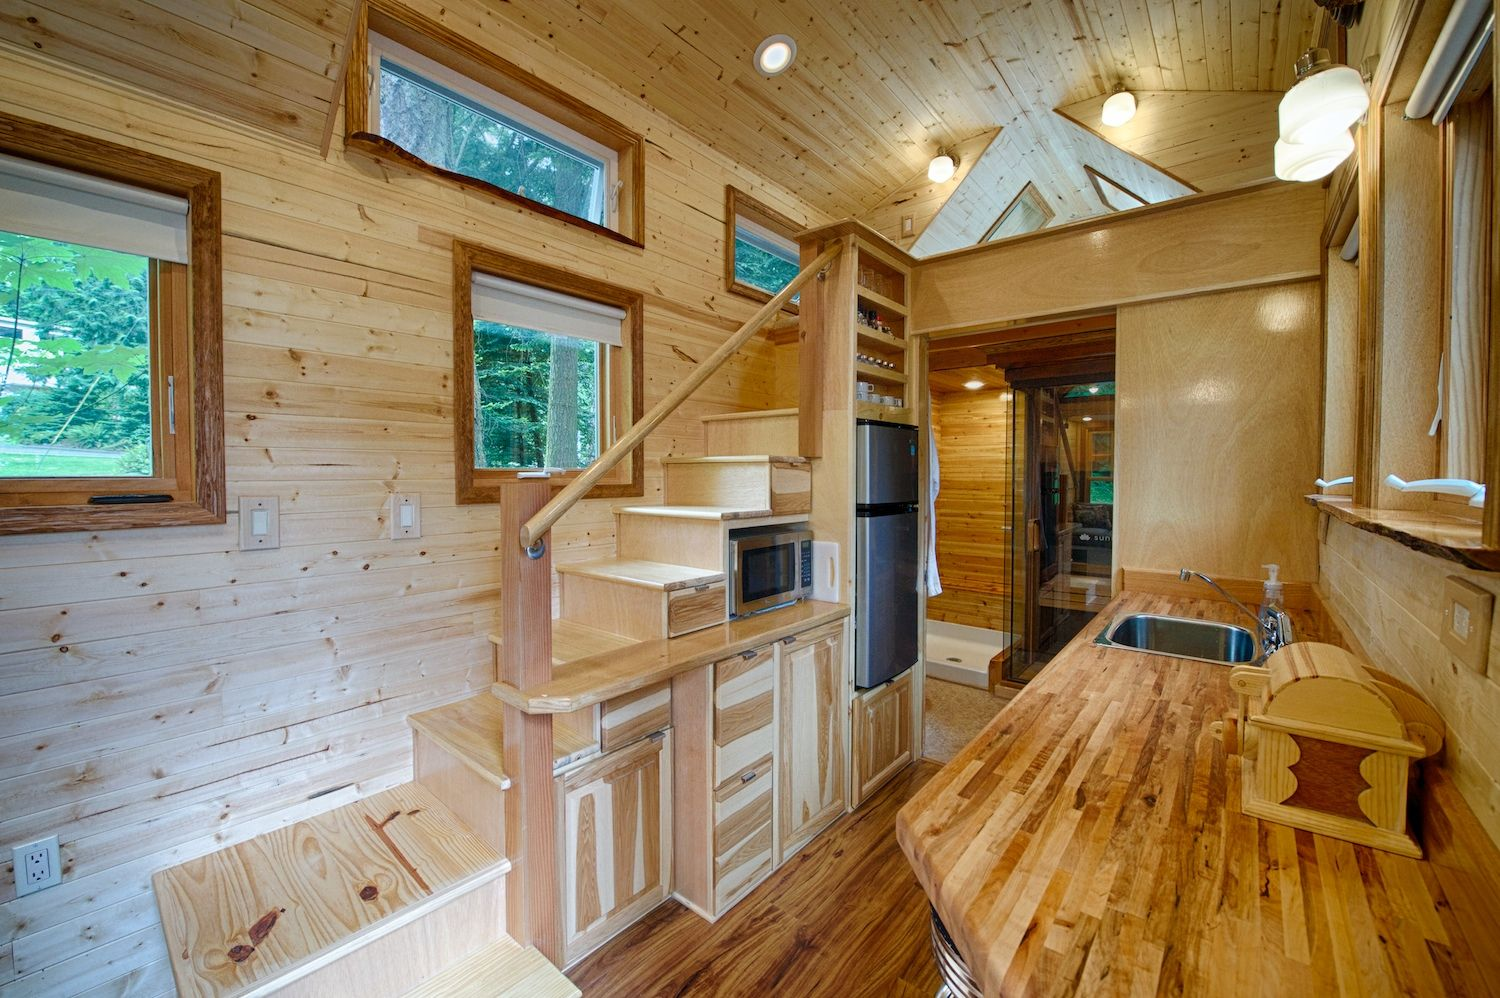 Tiny house kerry alexander hope island cottages for Minimalist house on wheels